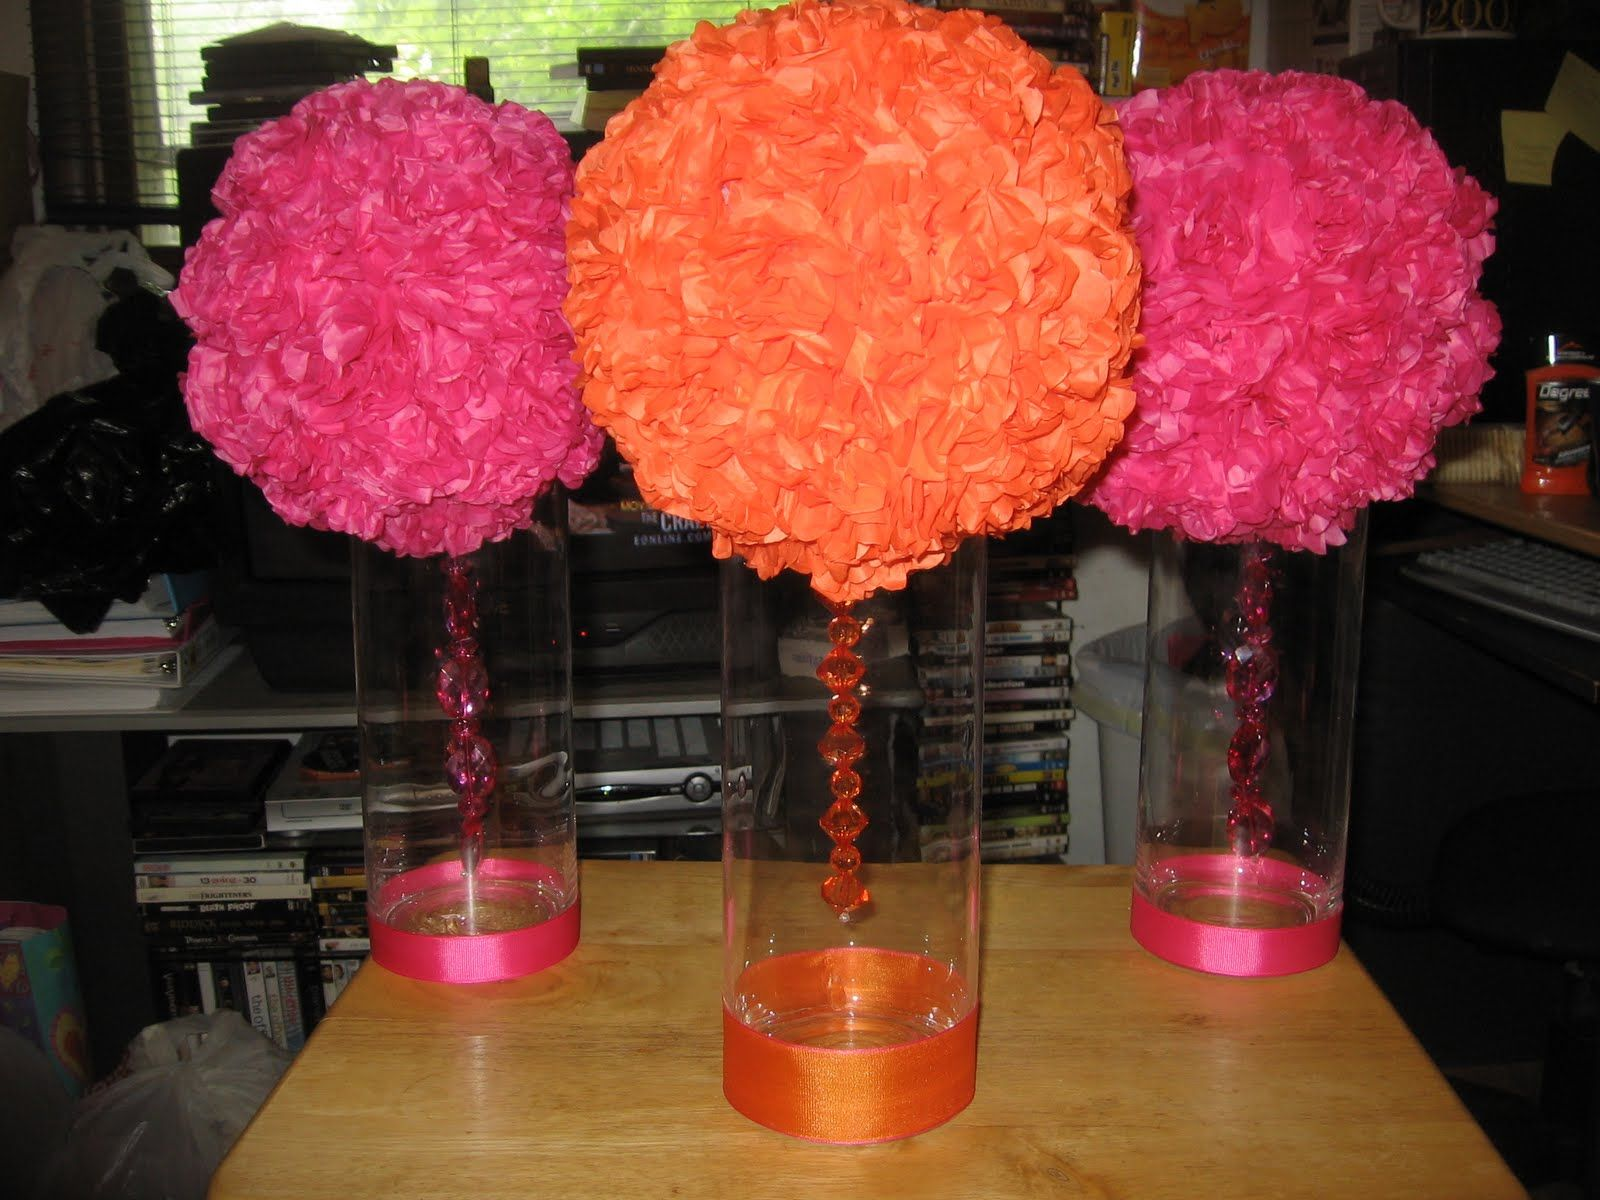 Graduation table decorations homemade - Homemade Graduation Centerpieces The Diy Bride Escort Card Table Centerpieces Finished